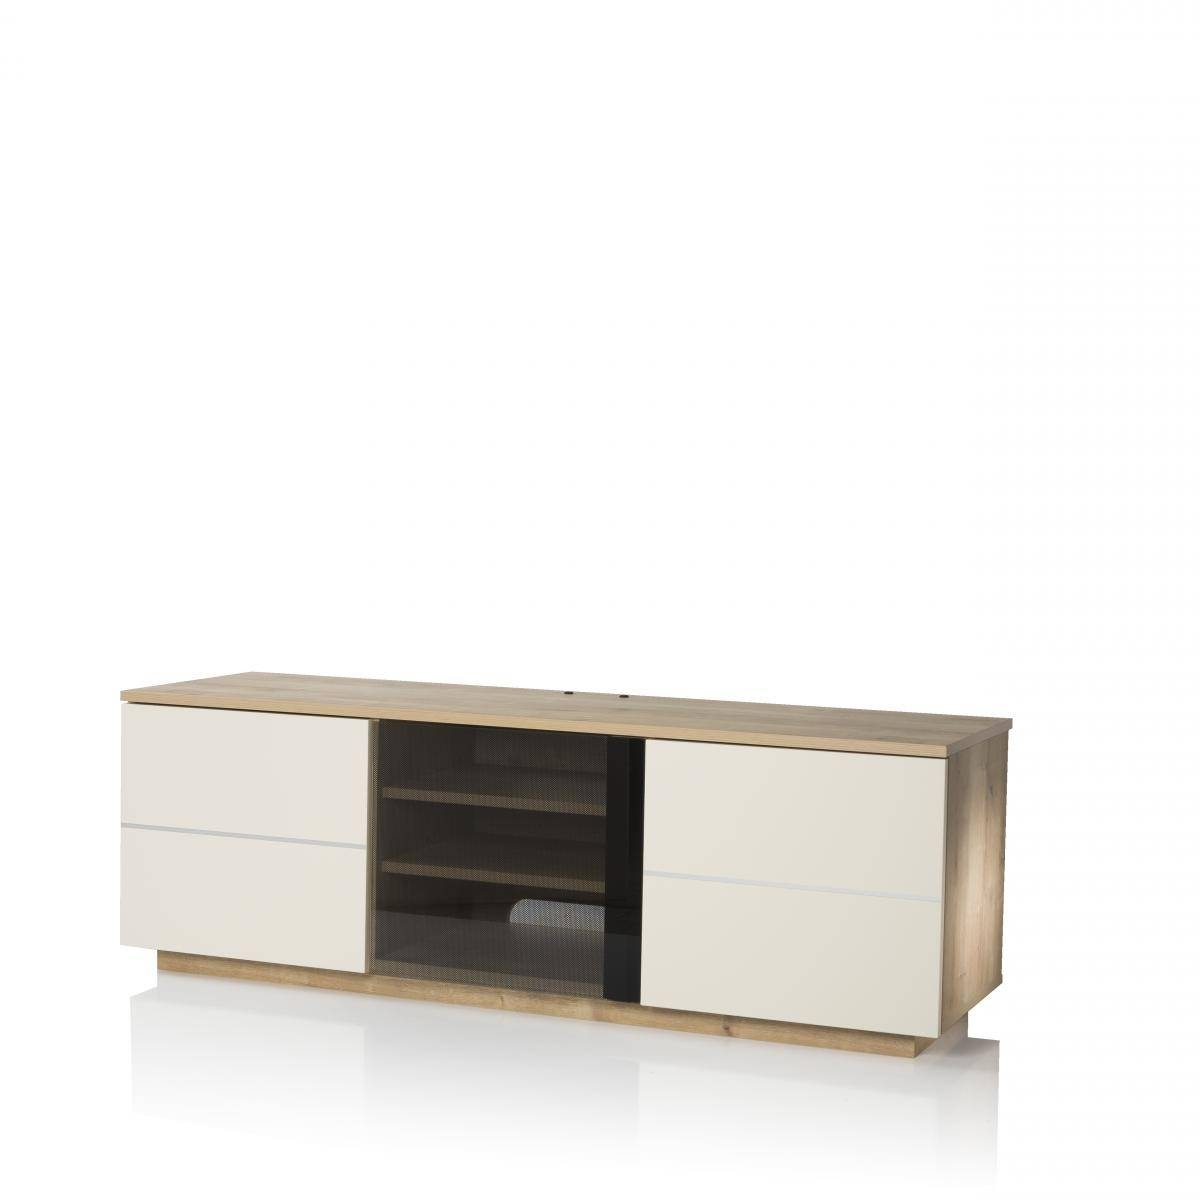 New London 150Cm Tv Cabinet Oak /cream | Nldn Oak Cr With Cream Tv Cabinets (Photo 3 of 15)